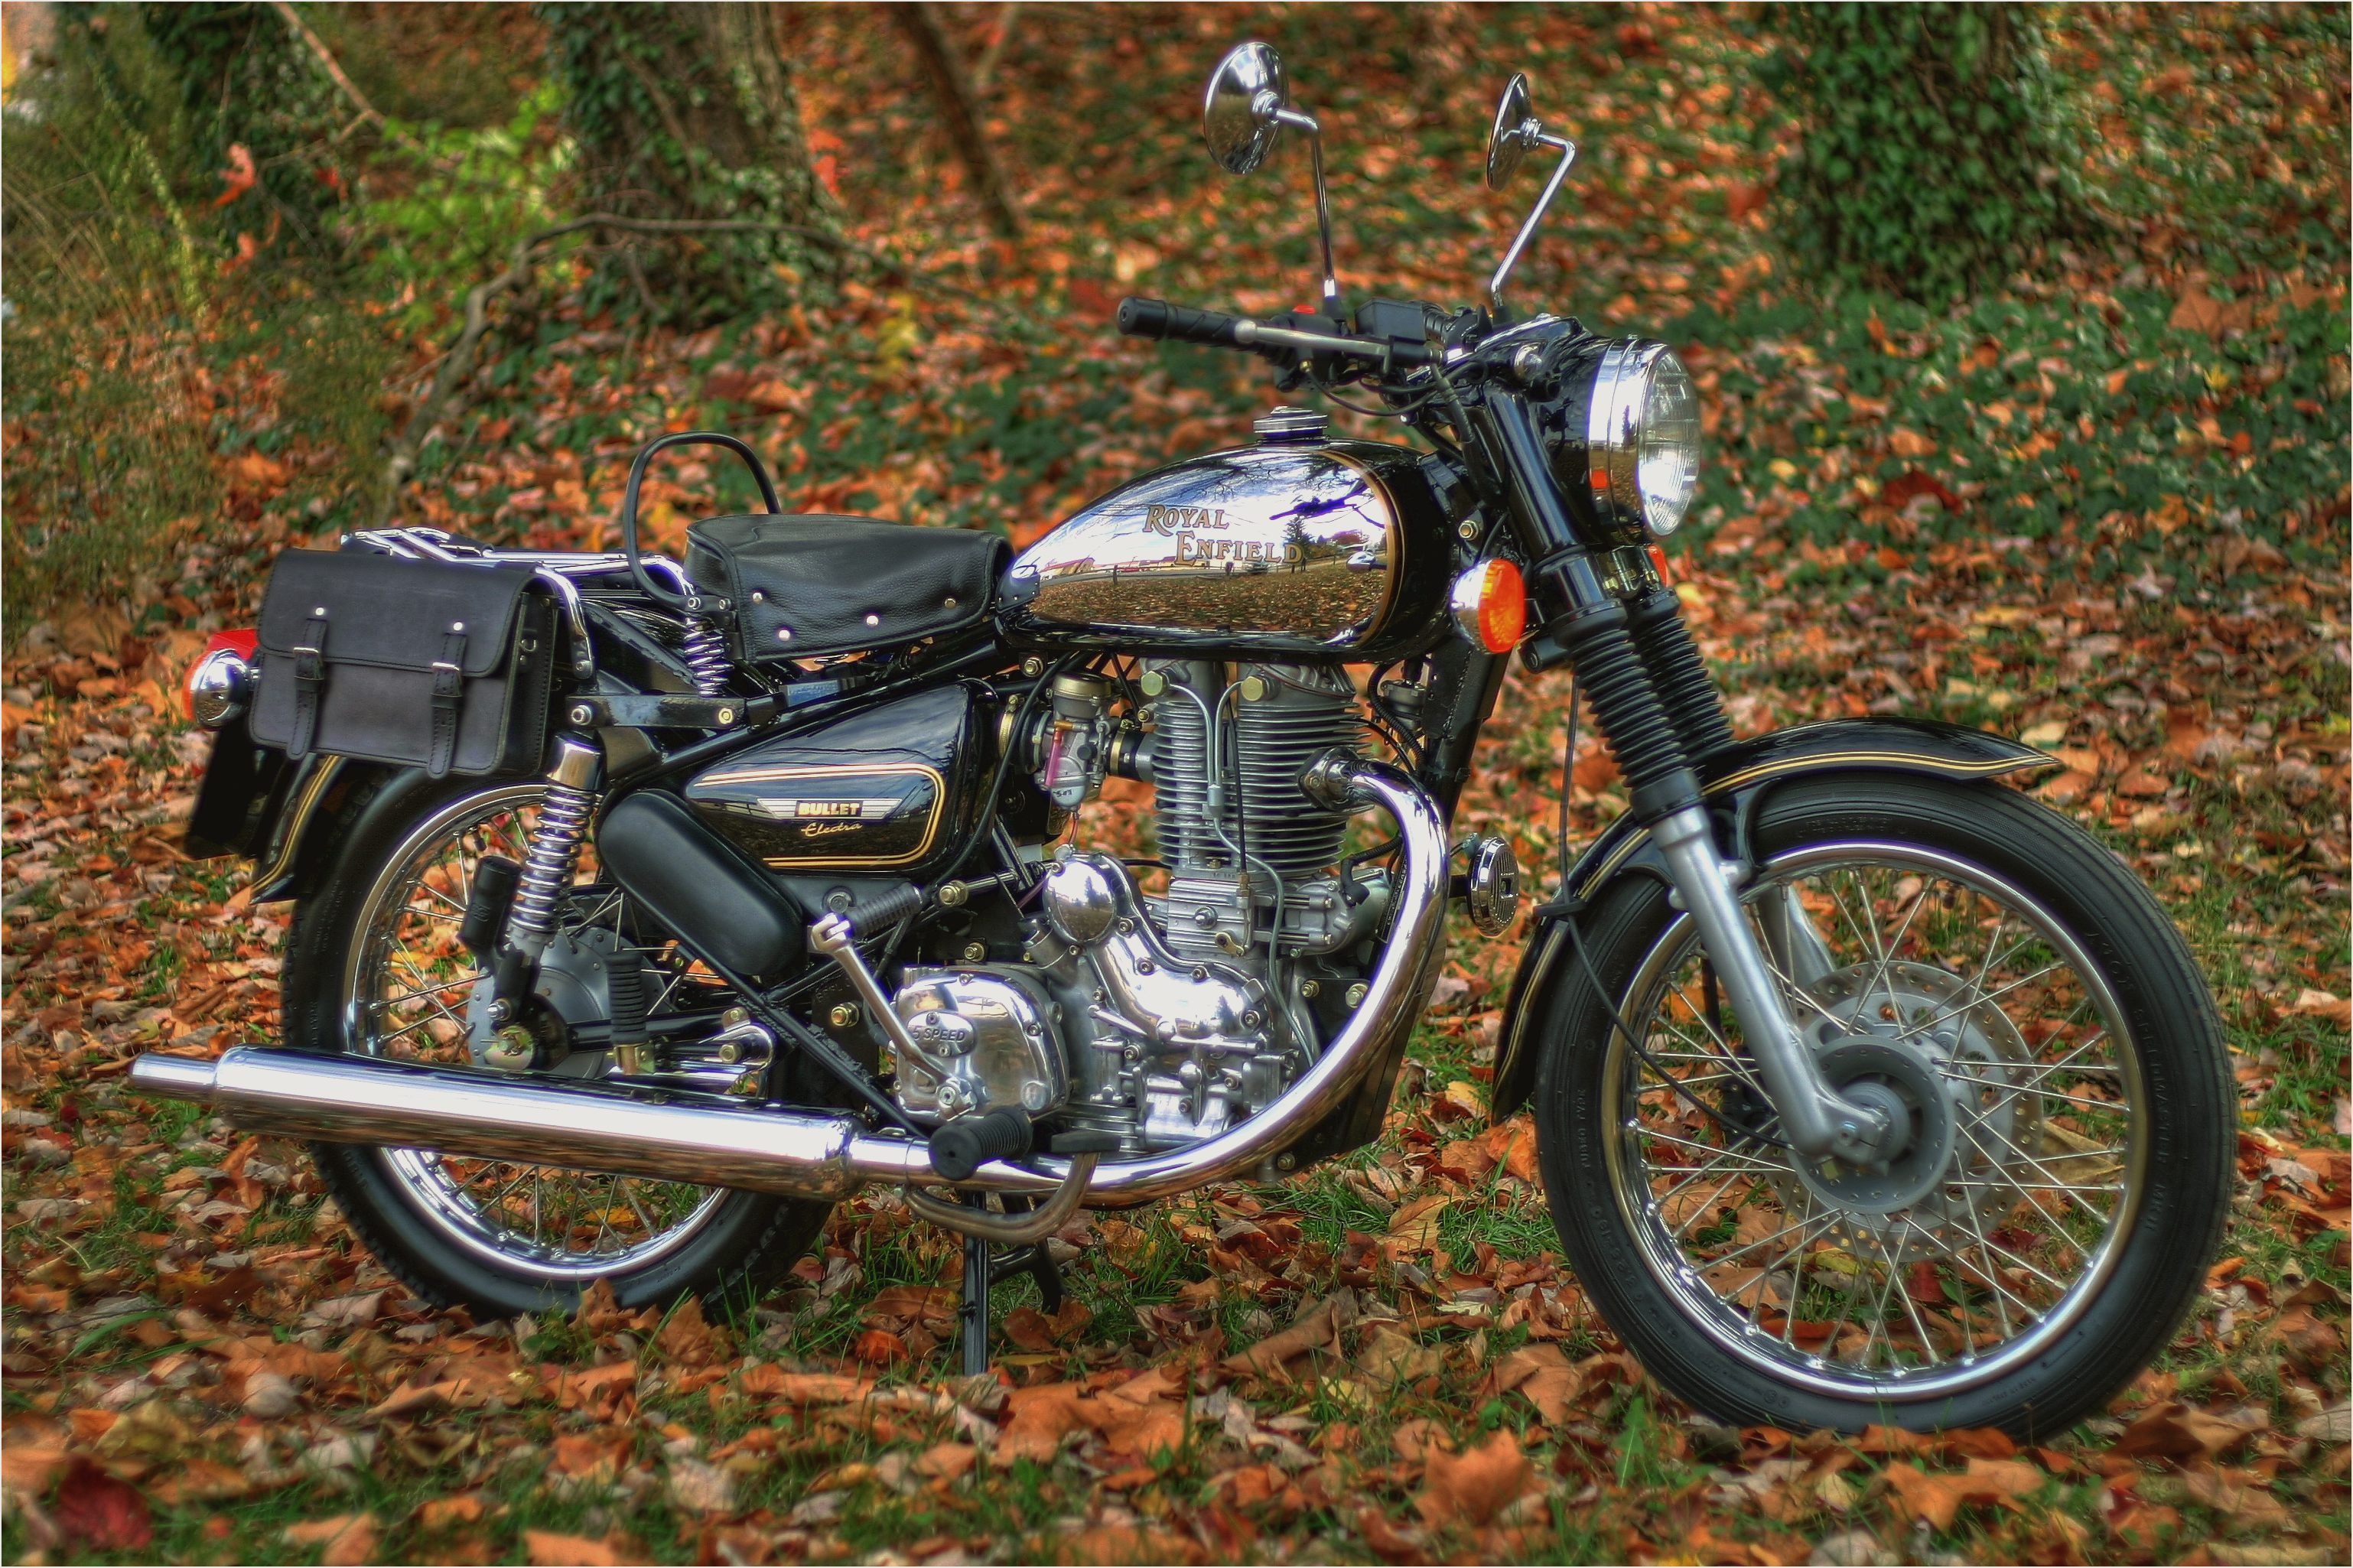 Royal Enfield Bullet 500 Deluxe AVL 2010 images #124046